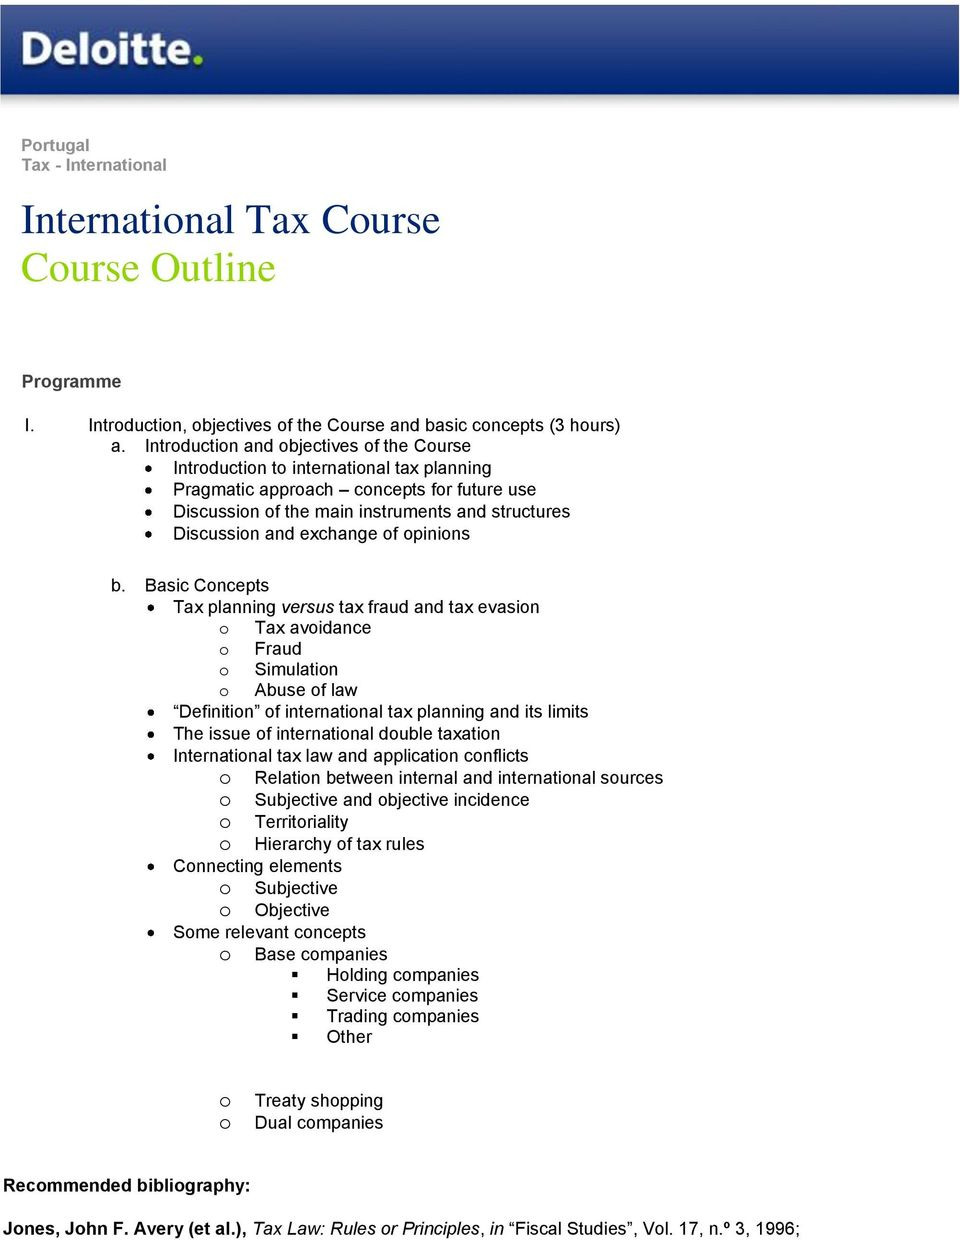 Basic Cncepts Tax planning versus tax fraud and tax evasin Tax avidance Fraud Simulatin Abuse f law Definitin f internatinal tax planning and its limits The issue f internatinal duble taxatin